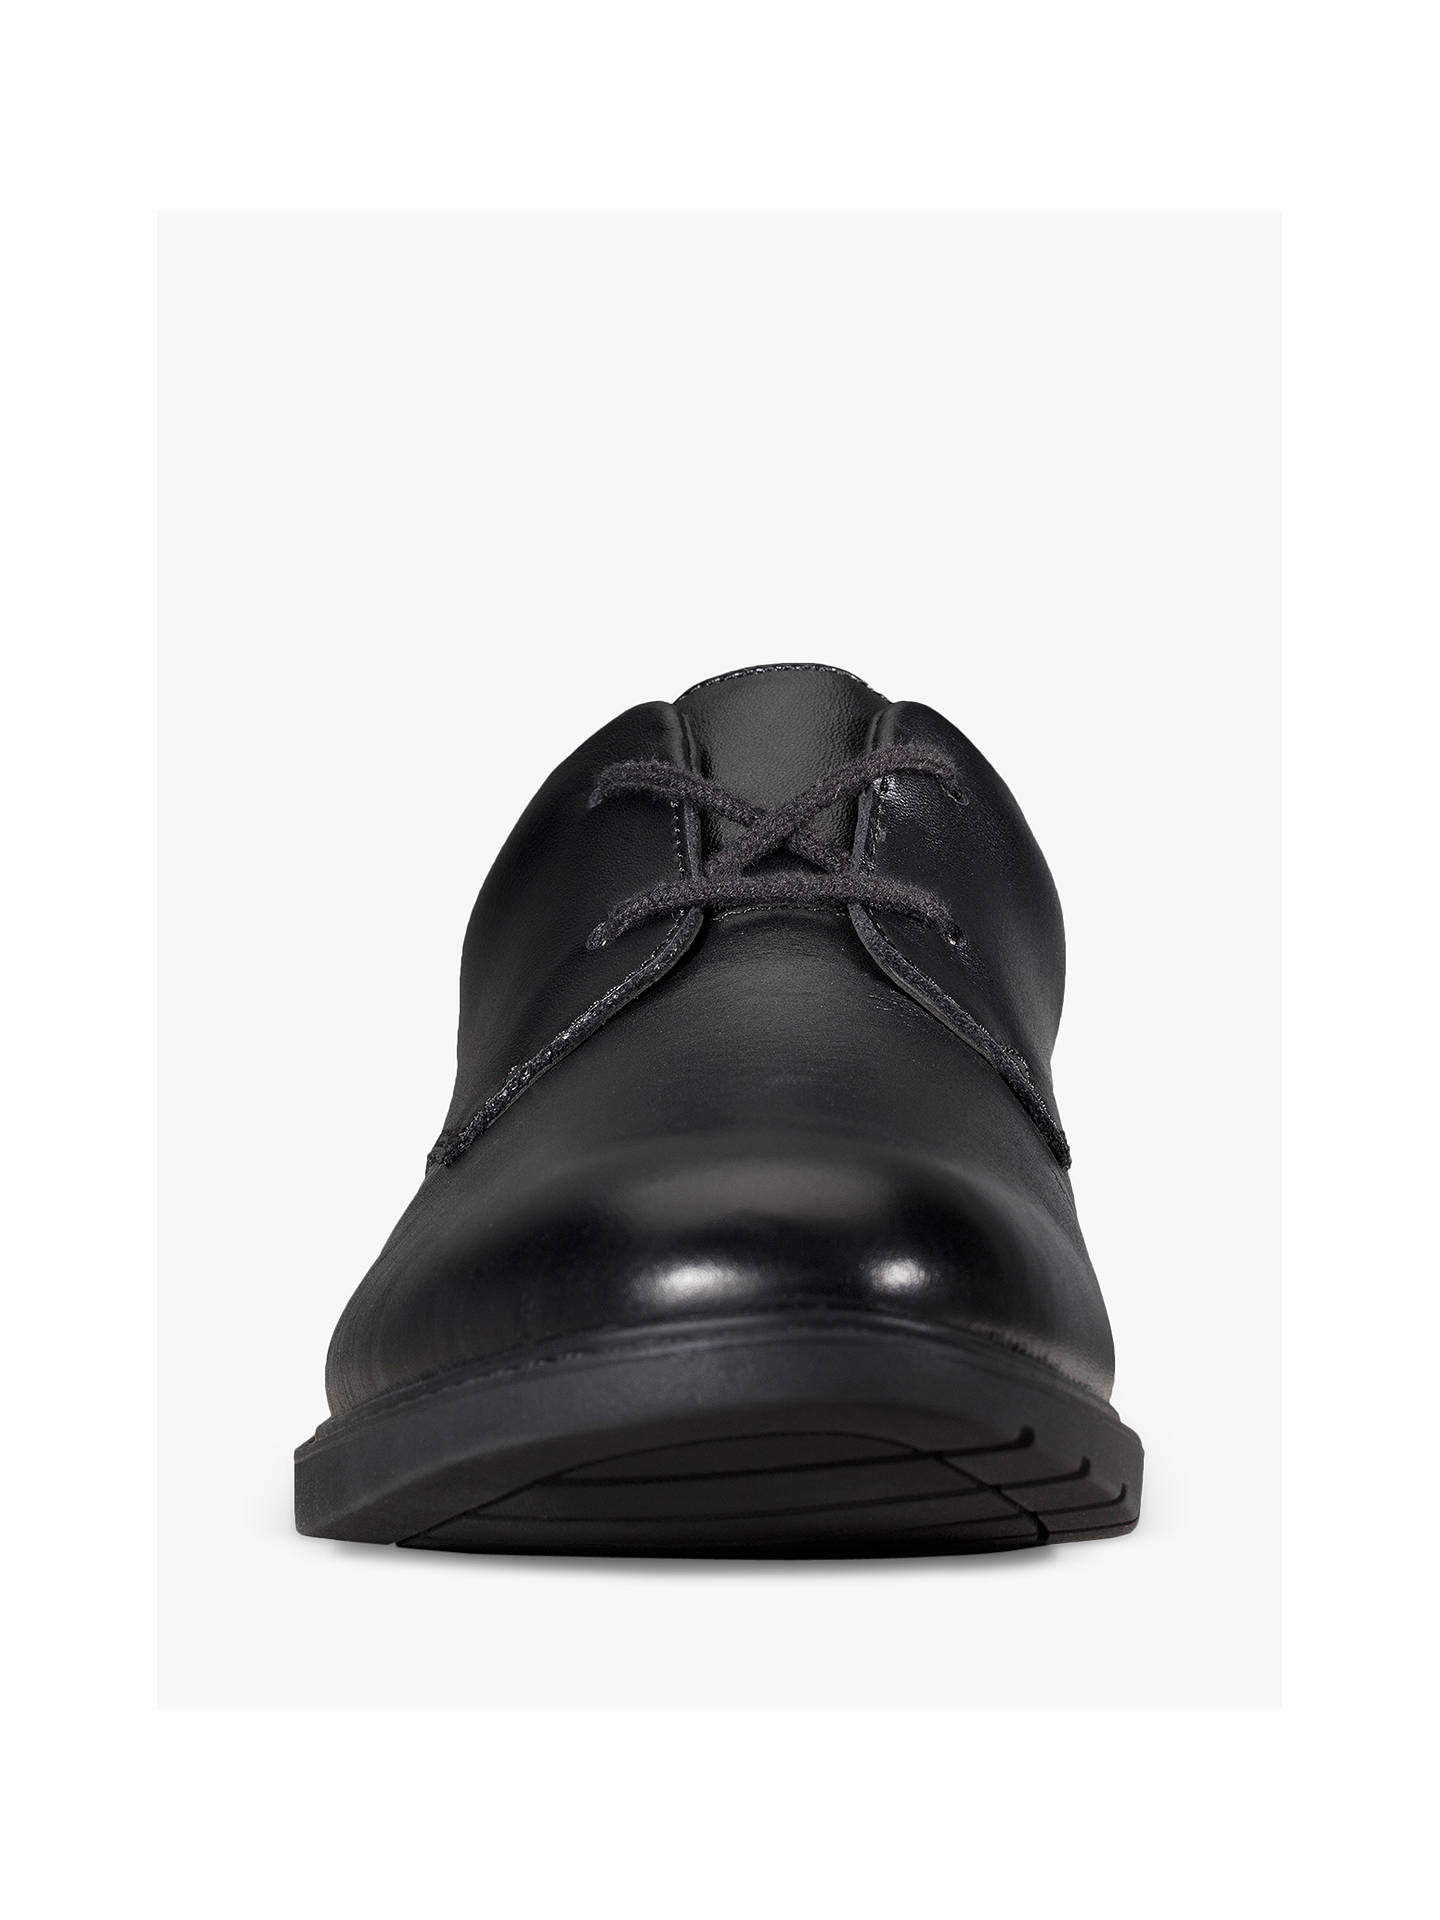 Buy Clarks Children's Scala Loop Youth Shoes, Black, 6.5F Online at johnlewis.com